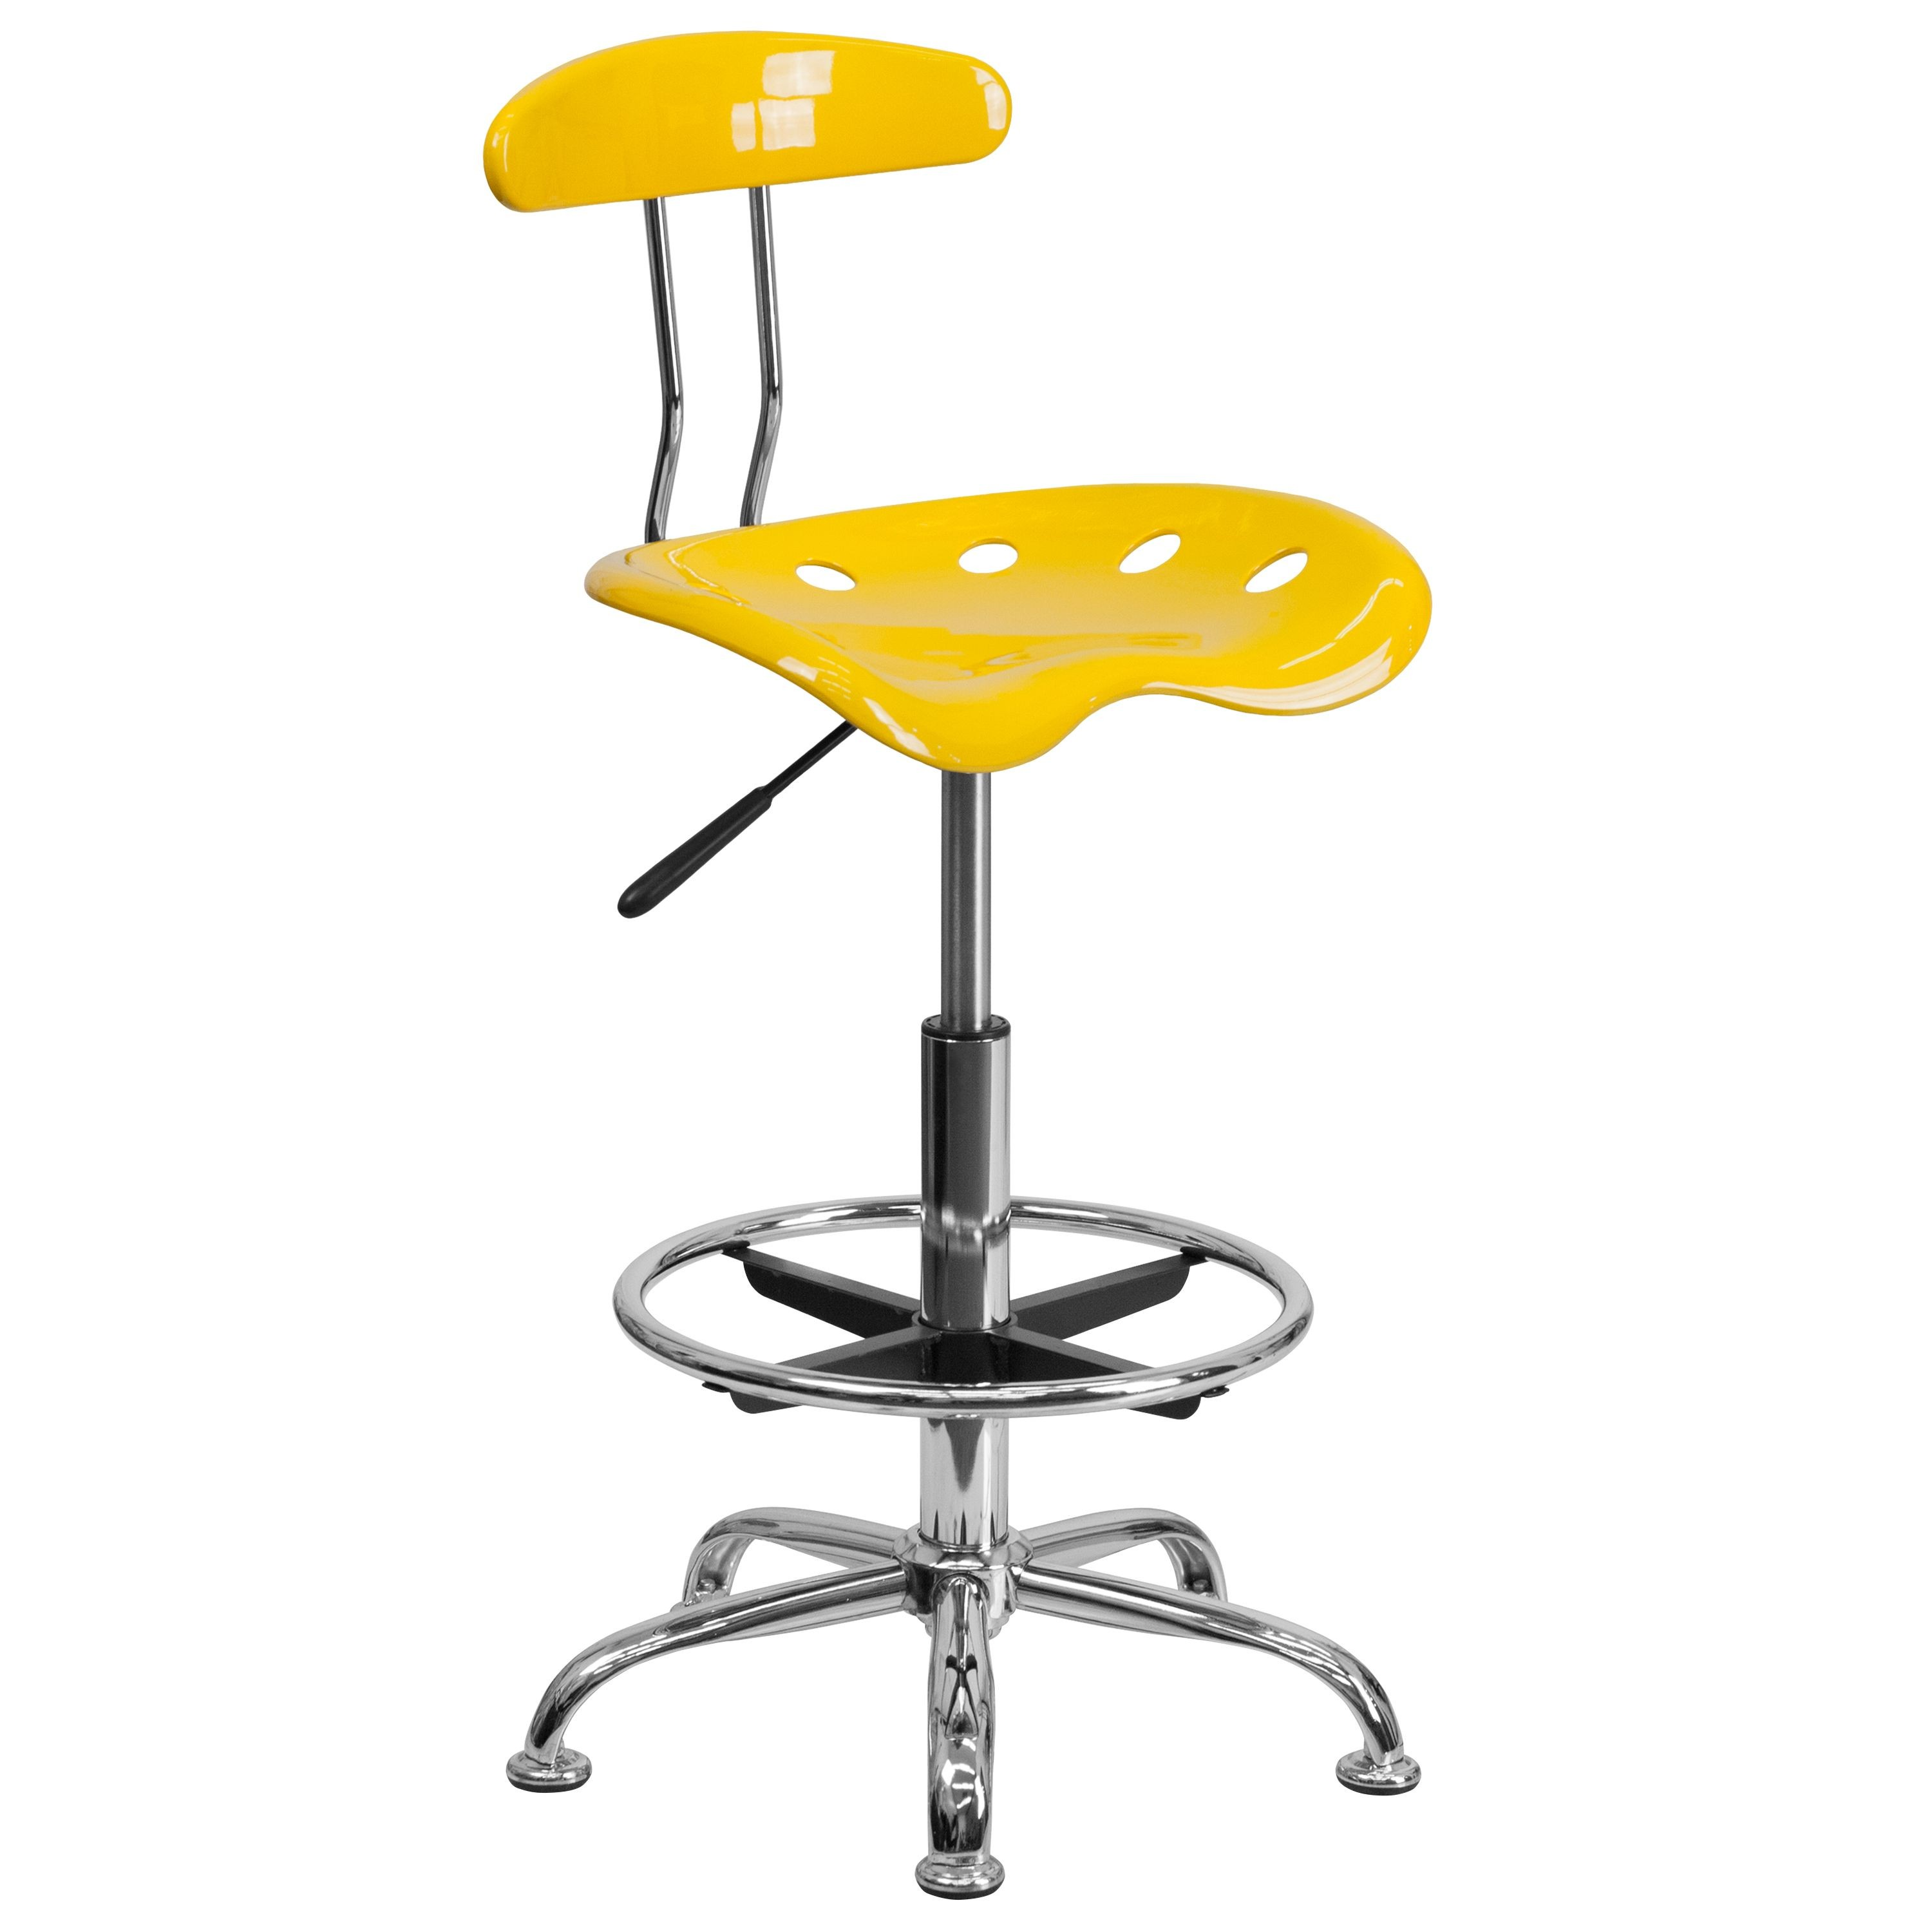 Flash Furniture LF-215-YELLOW-GG Vibrant Orange-Yellow and Chrome Bar Height Drafting Stool with Tractor Seat